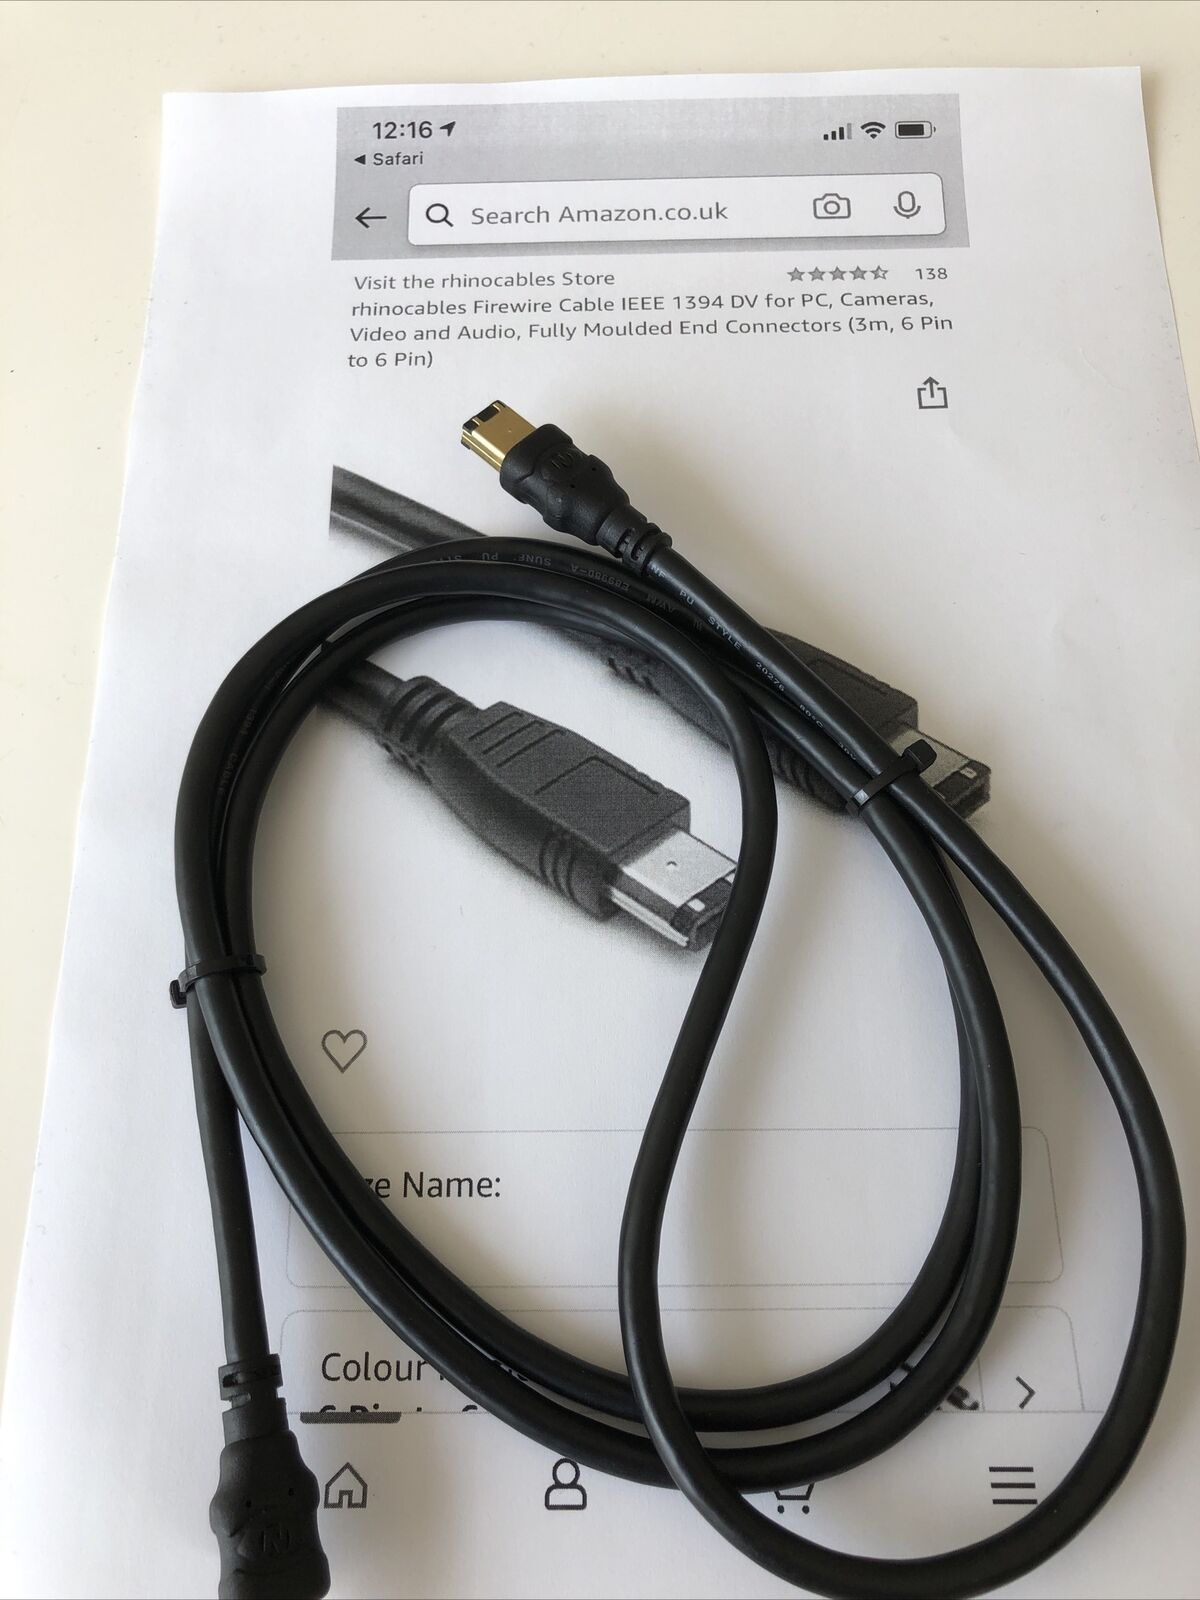 Rhinocables Firewire Cable IEEE 1394 DV for PC,Cameras,Video Audio